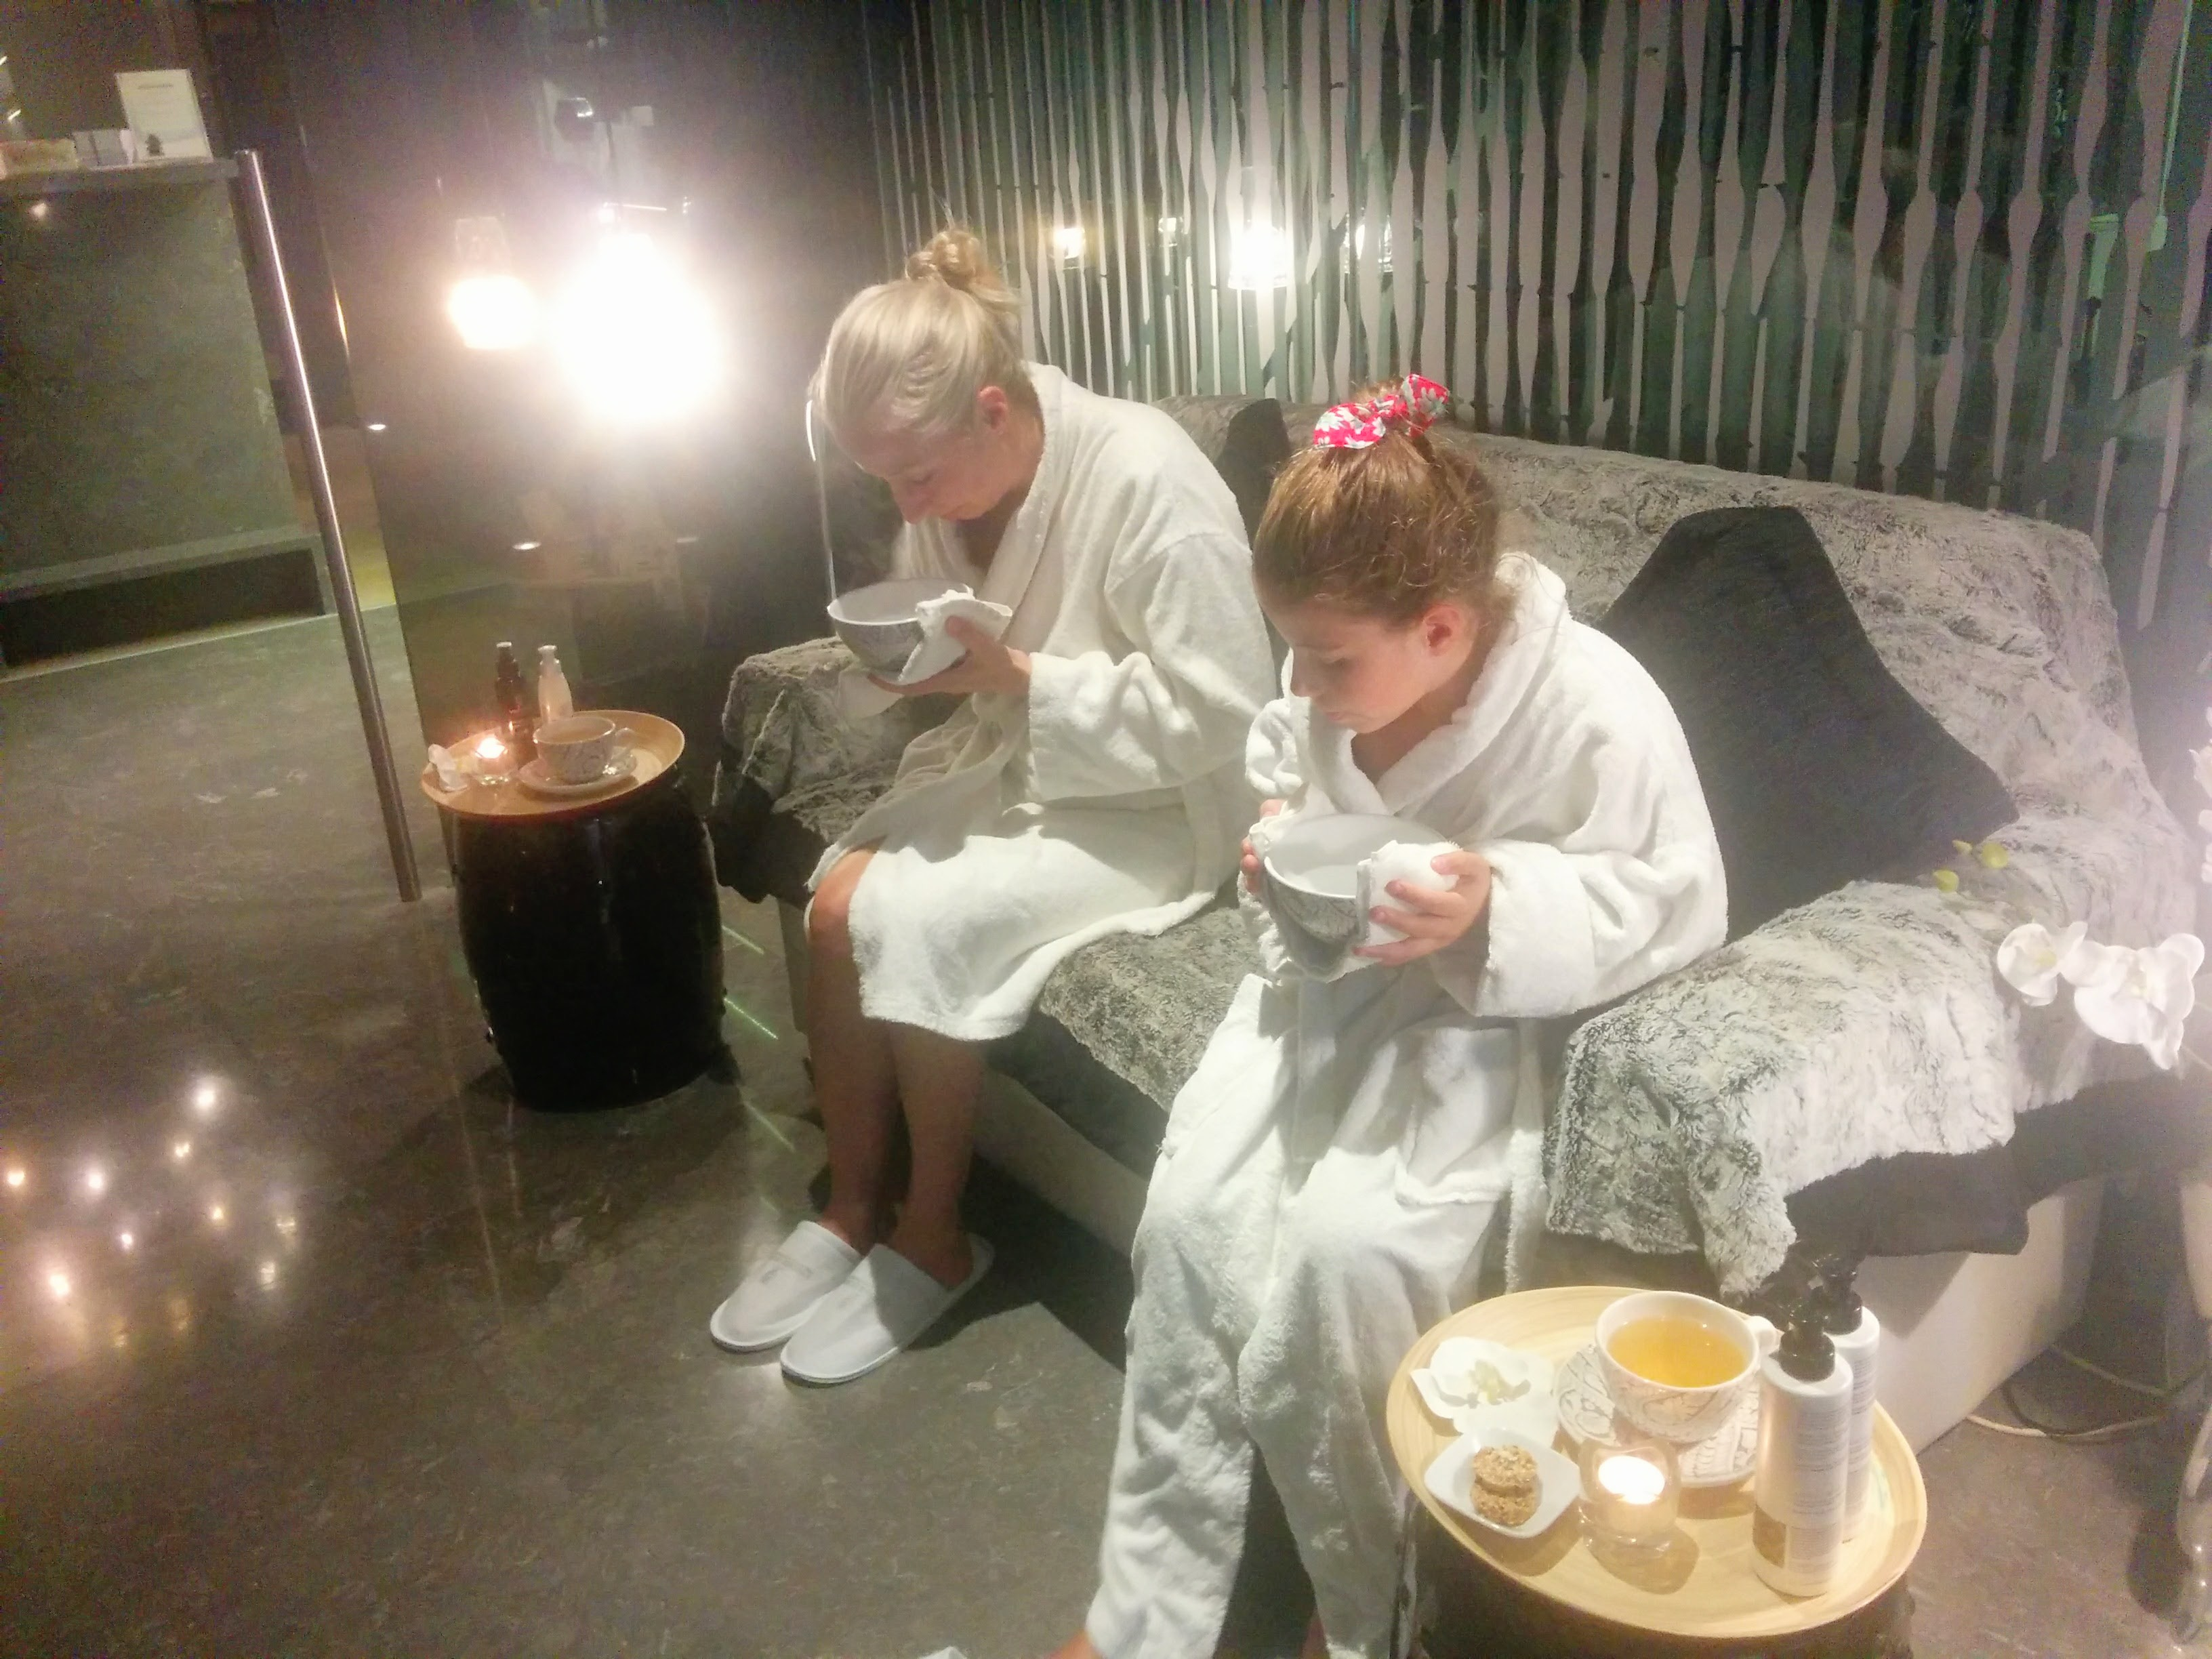 family spa and wellness ©familyexperiencesblog.com